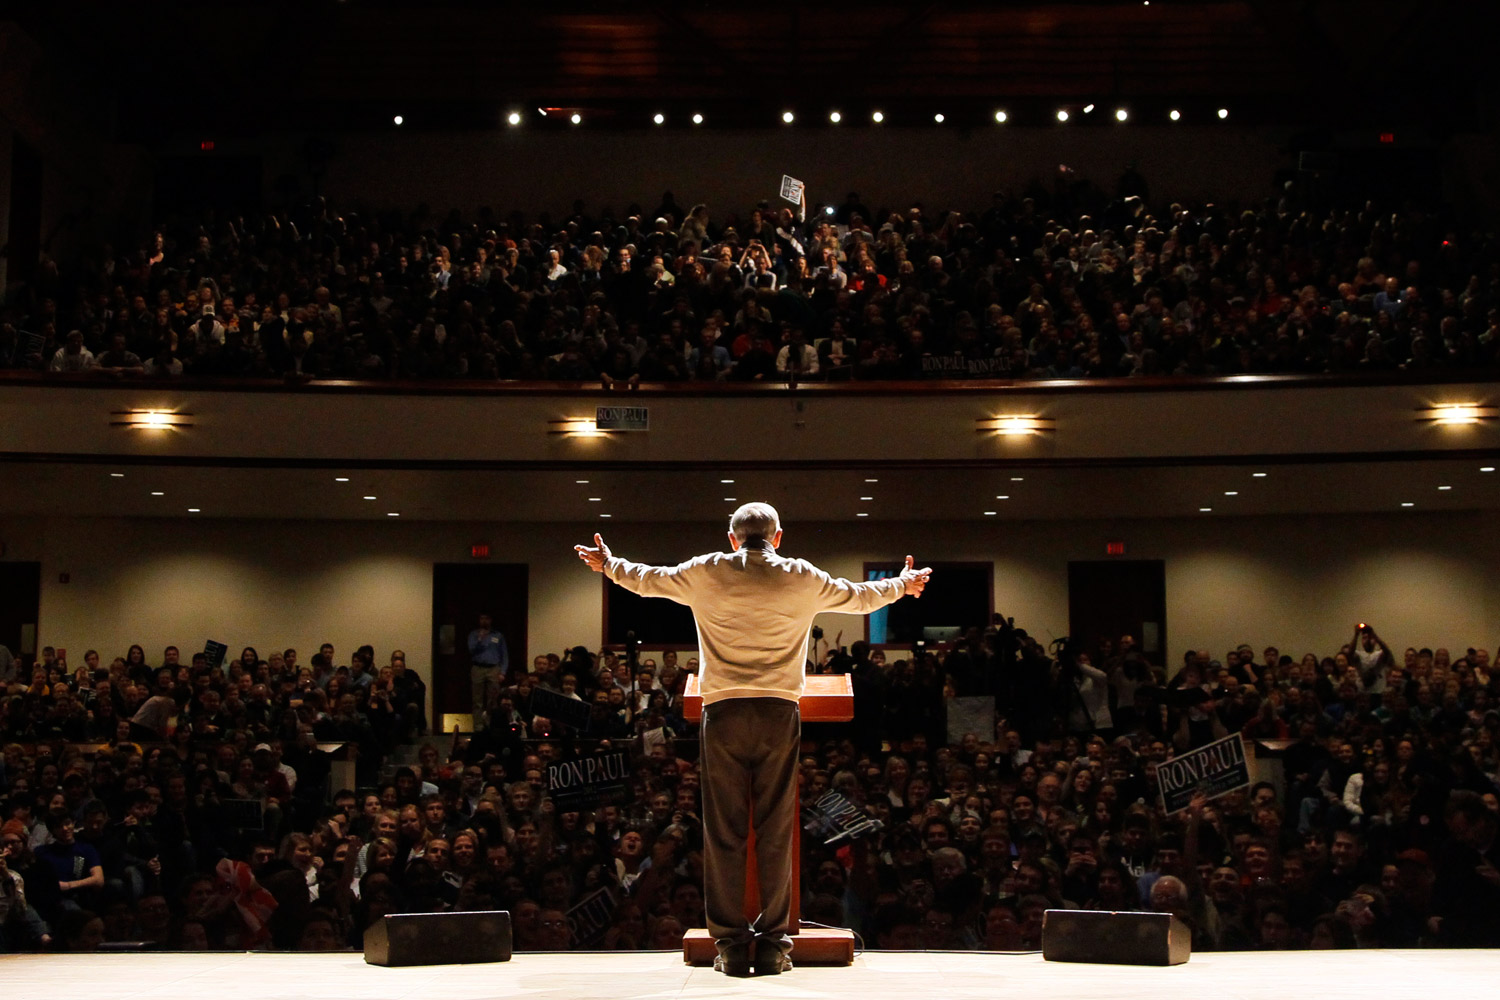 February 4, 2012. Republican presidential candidate Rep. Ron Paul, R-Texas, speaks during a campaign stop at Bethel University, in Arden Hills, Minn.